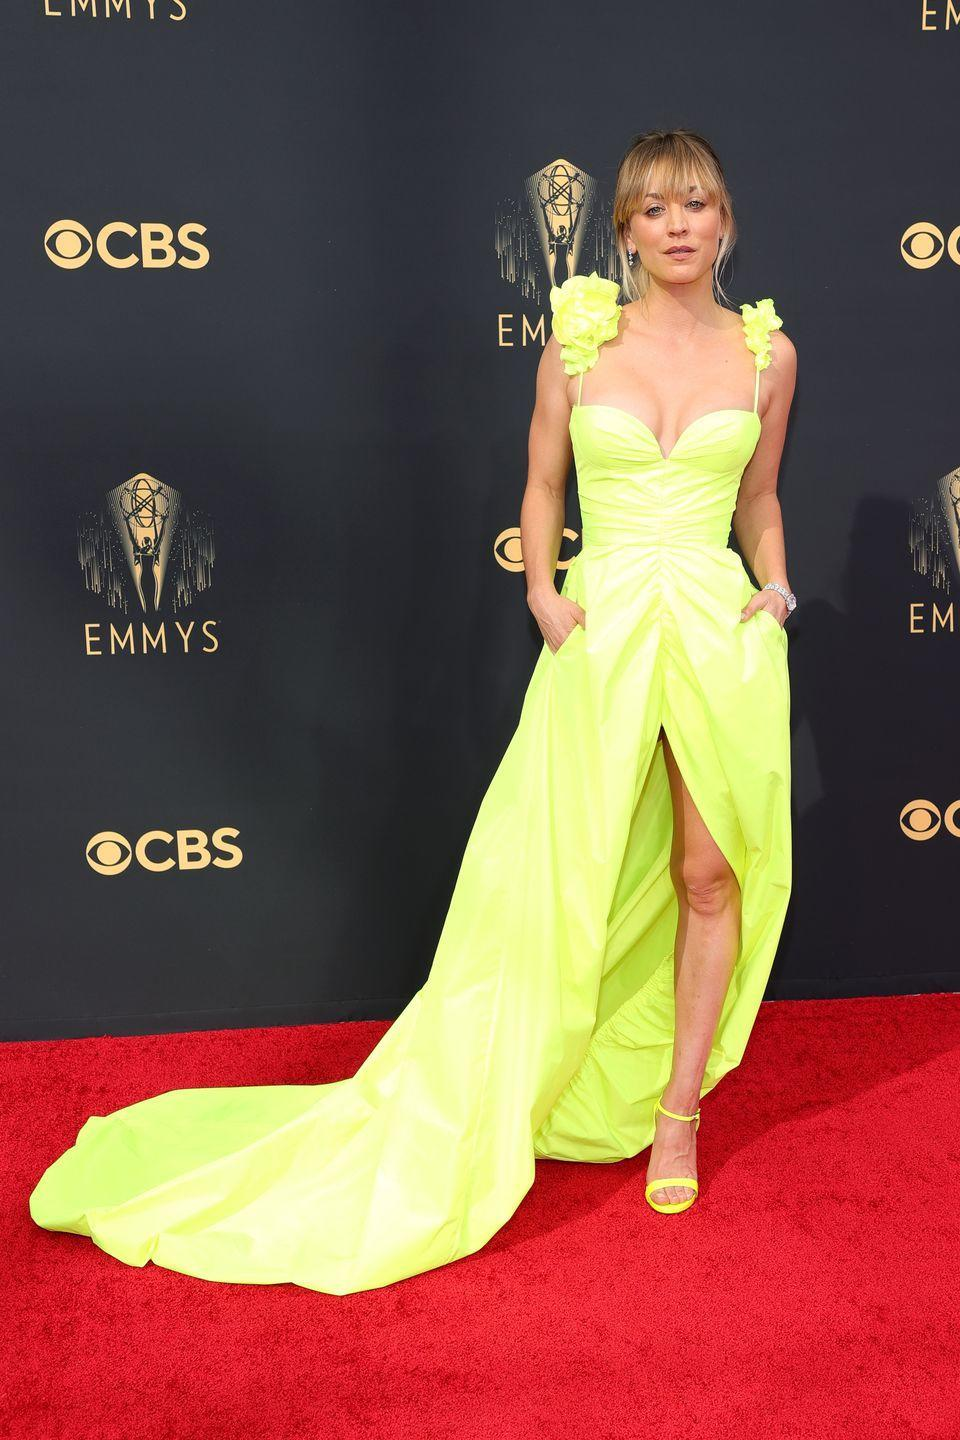 <p>Neon was a big trend for the night, and Kaley Cuoco was on board. The actress chose a chic gown by Vera Wang, which featured floral detail on the strappy shoulders and a slit. She paired the look with matching shoes and a messy updo.</p>